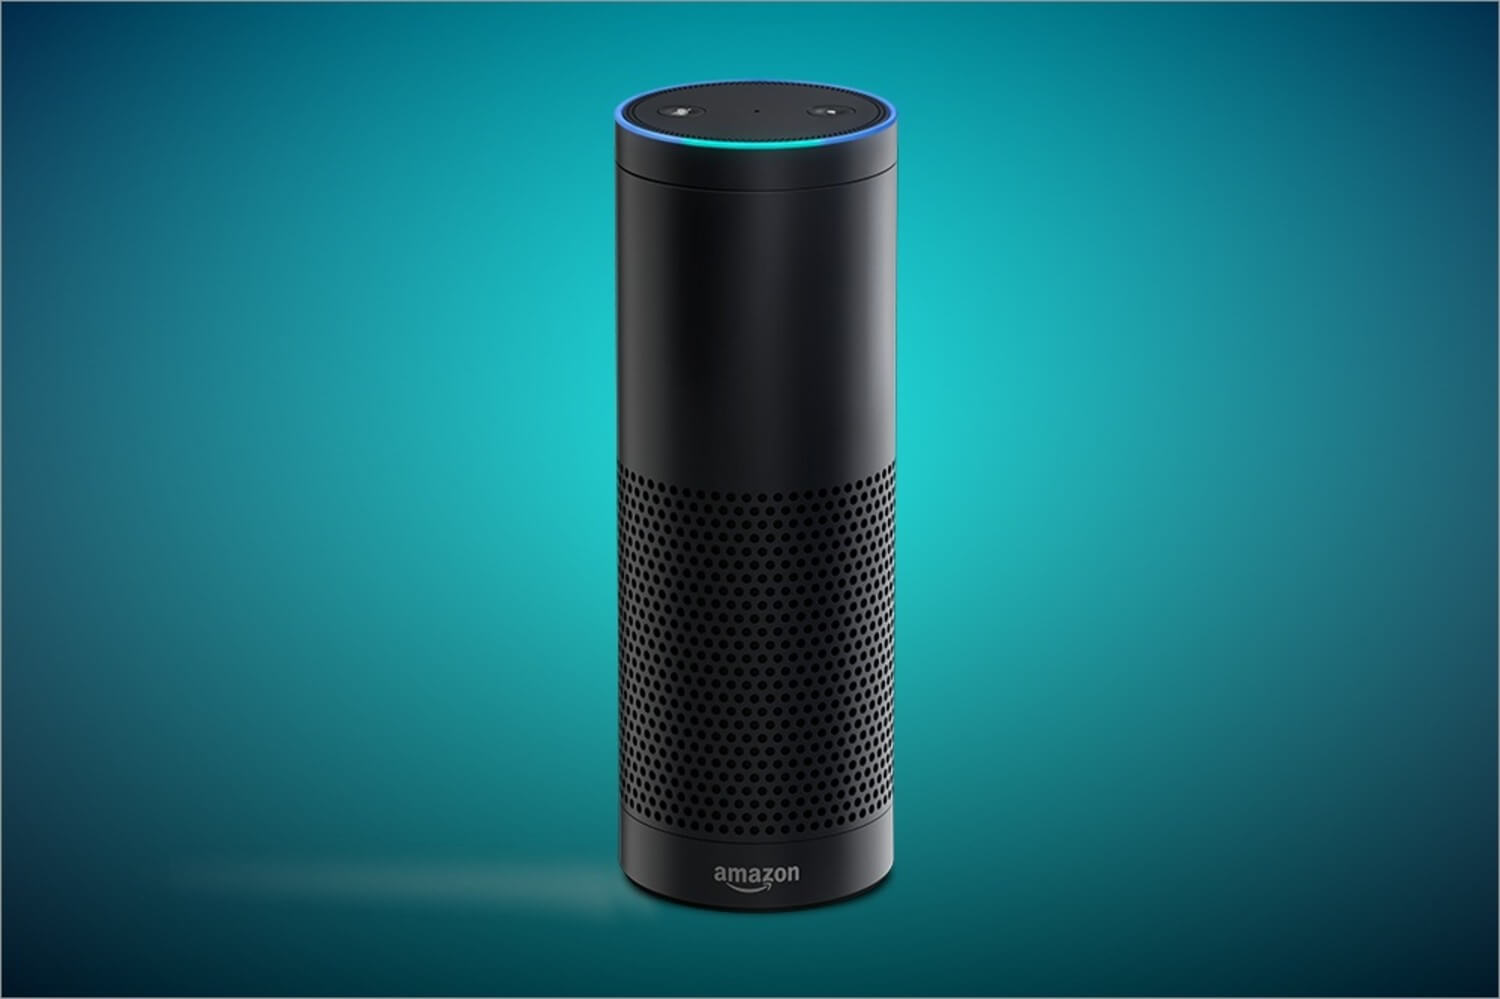 In The News: Software Engineers Could Soon Outsource Part of Their Jobs To Alexa